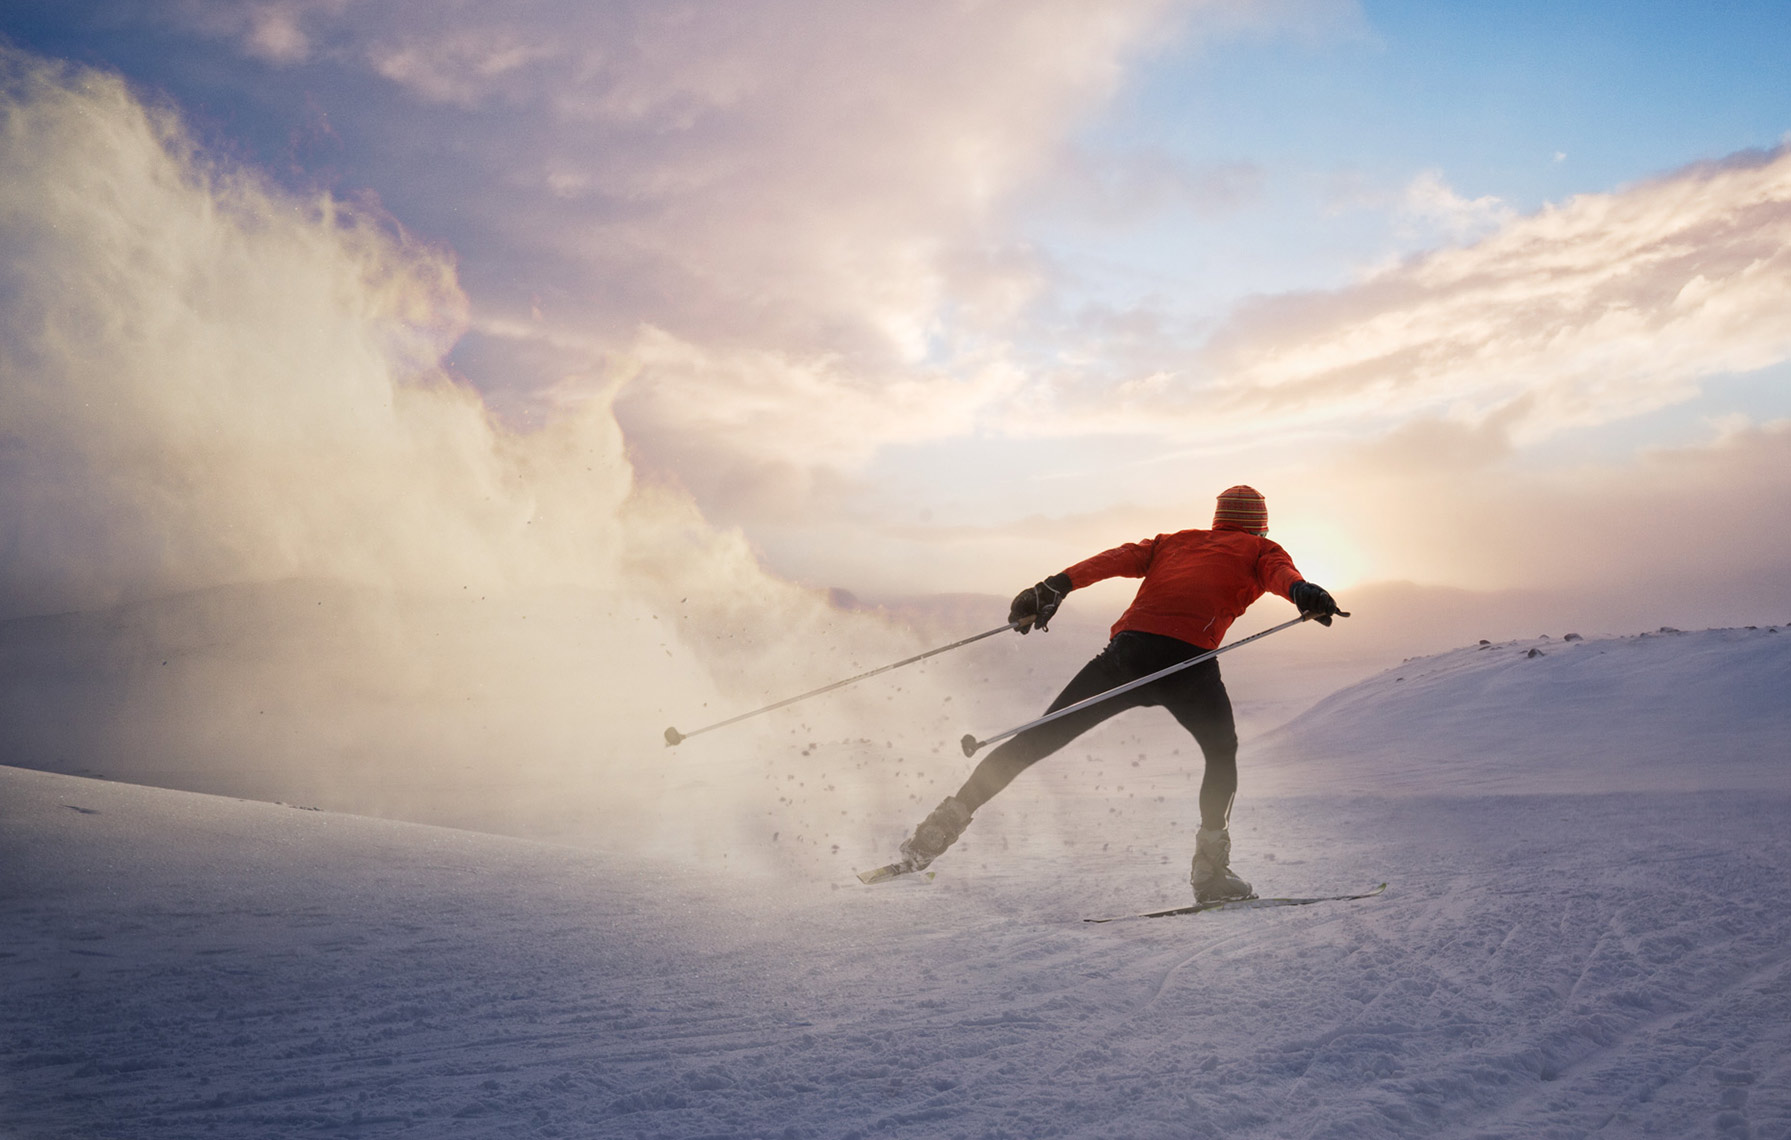 SKATE-SKIING-INTO-THE-SUNSET